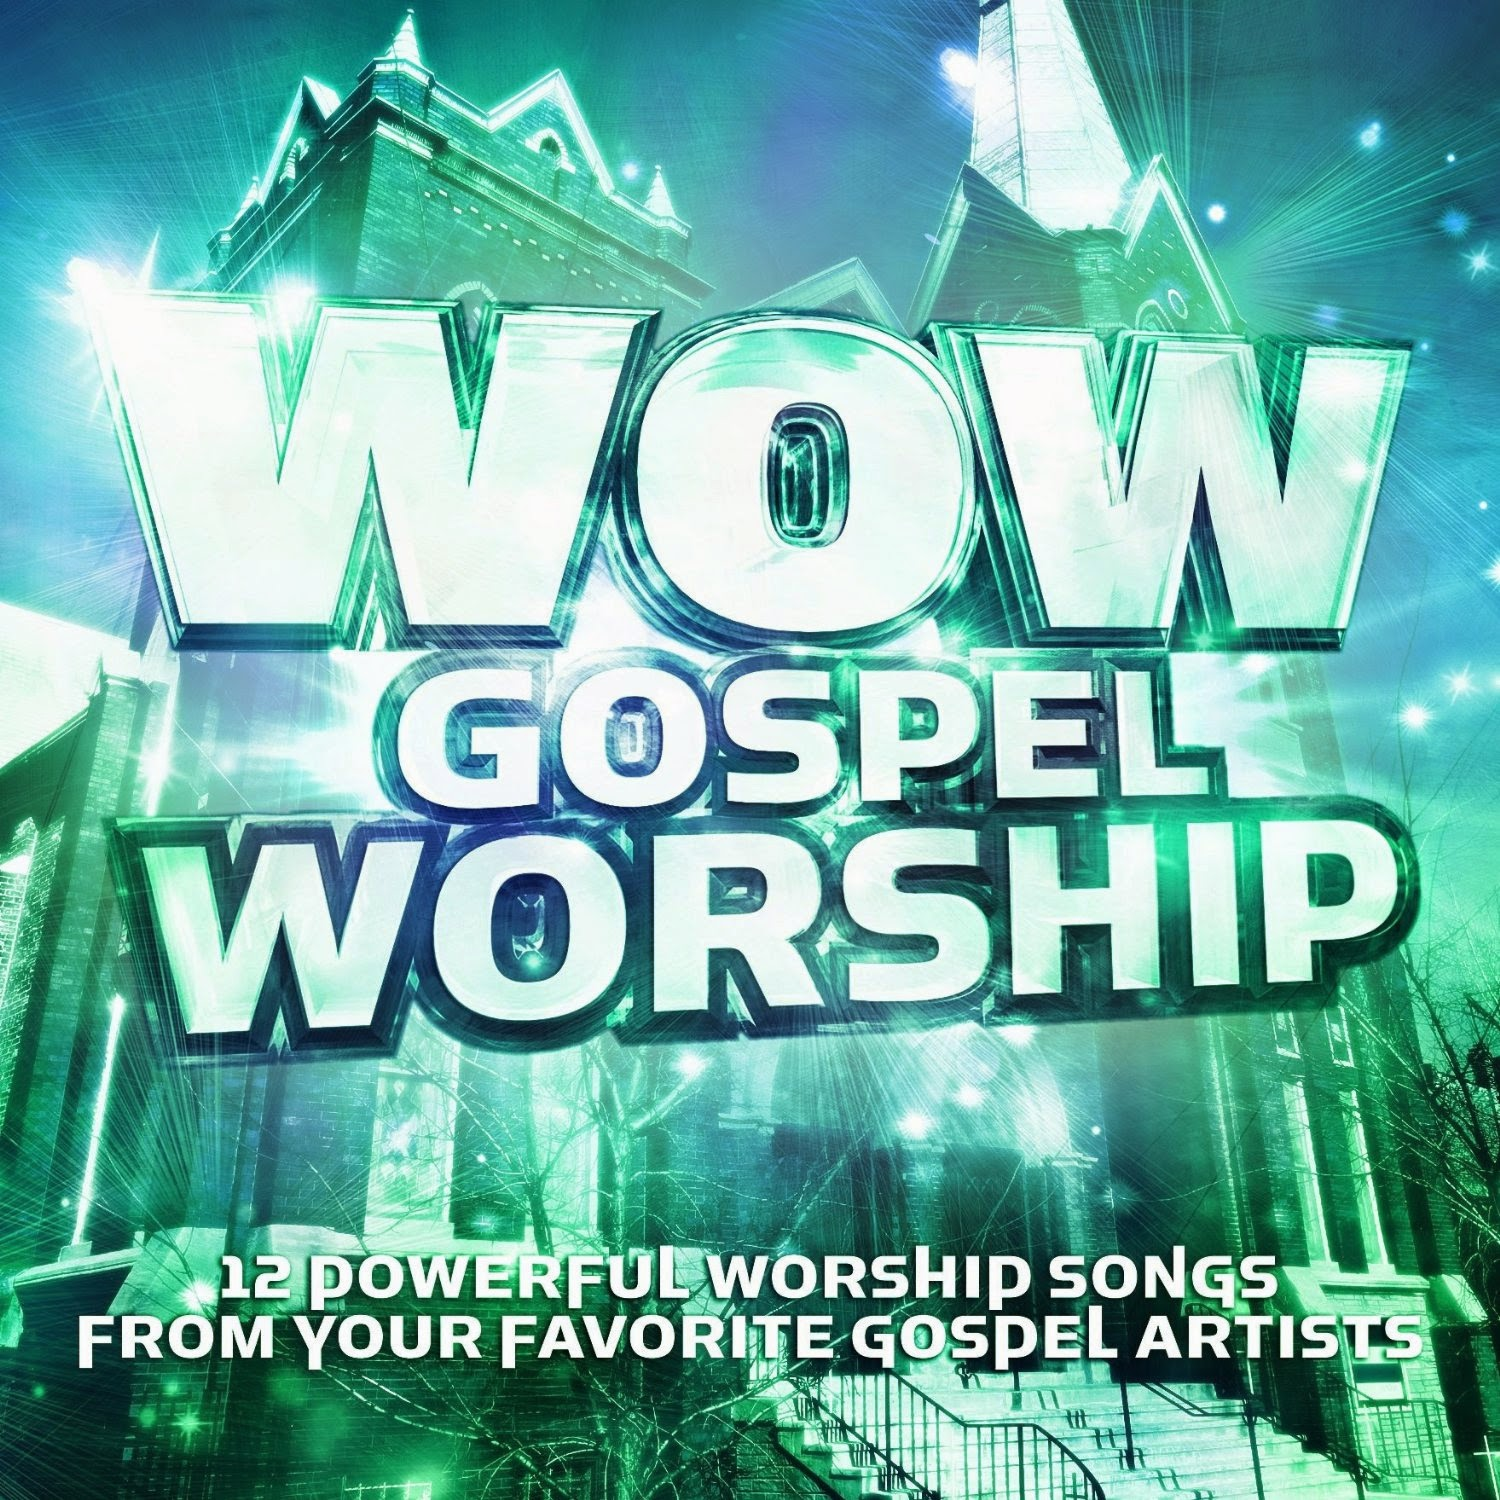 Various Artists - wow gospel 2015 Gospel worship songs tracklist